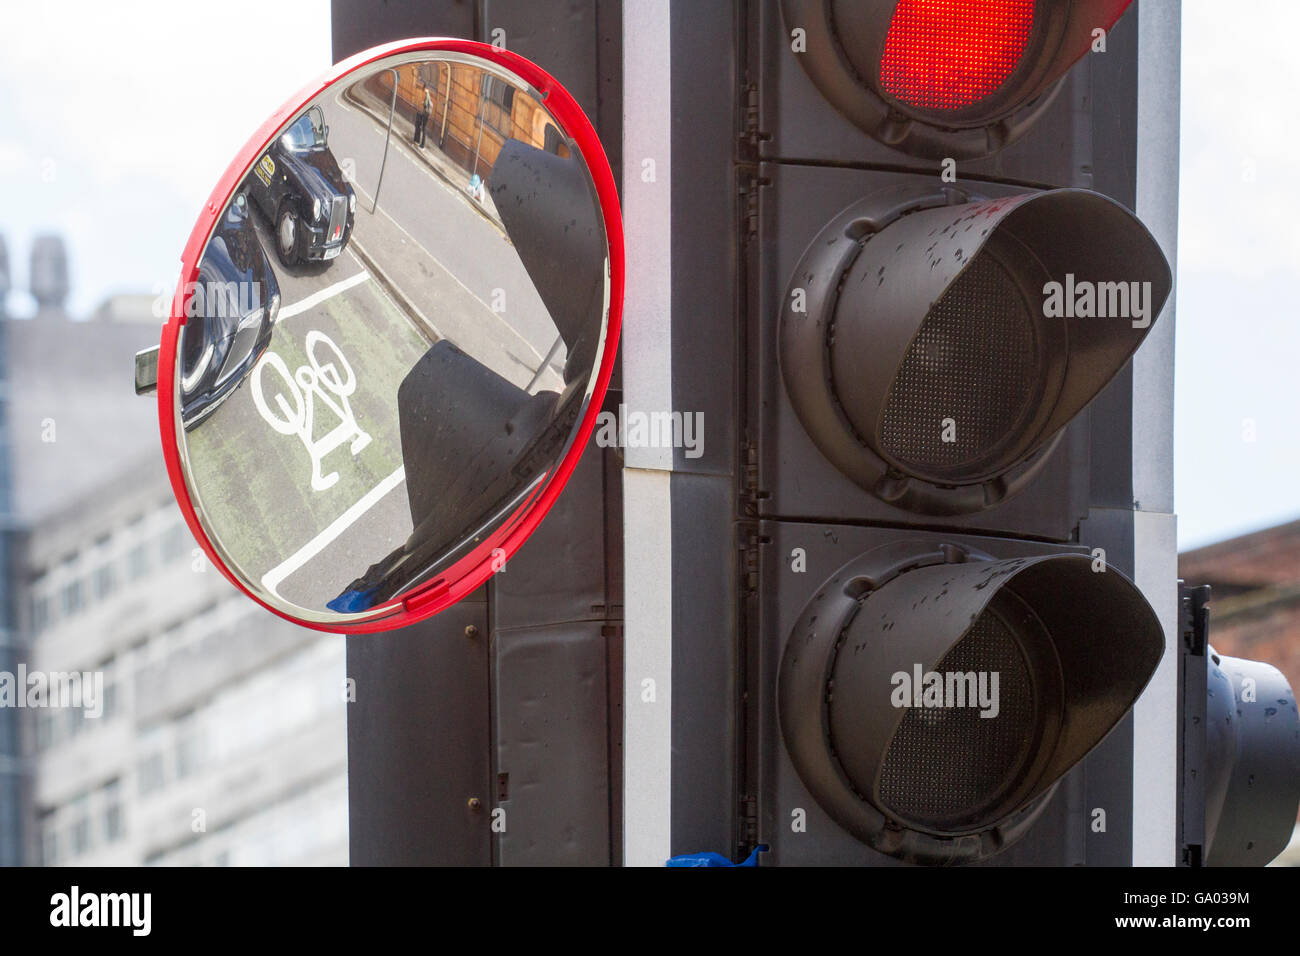 Cyclists mirror at traffic lights to give nearside vision for high-sided vehicles, Manchester, UK - Stock Image